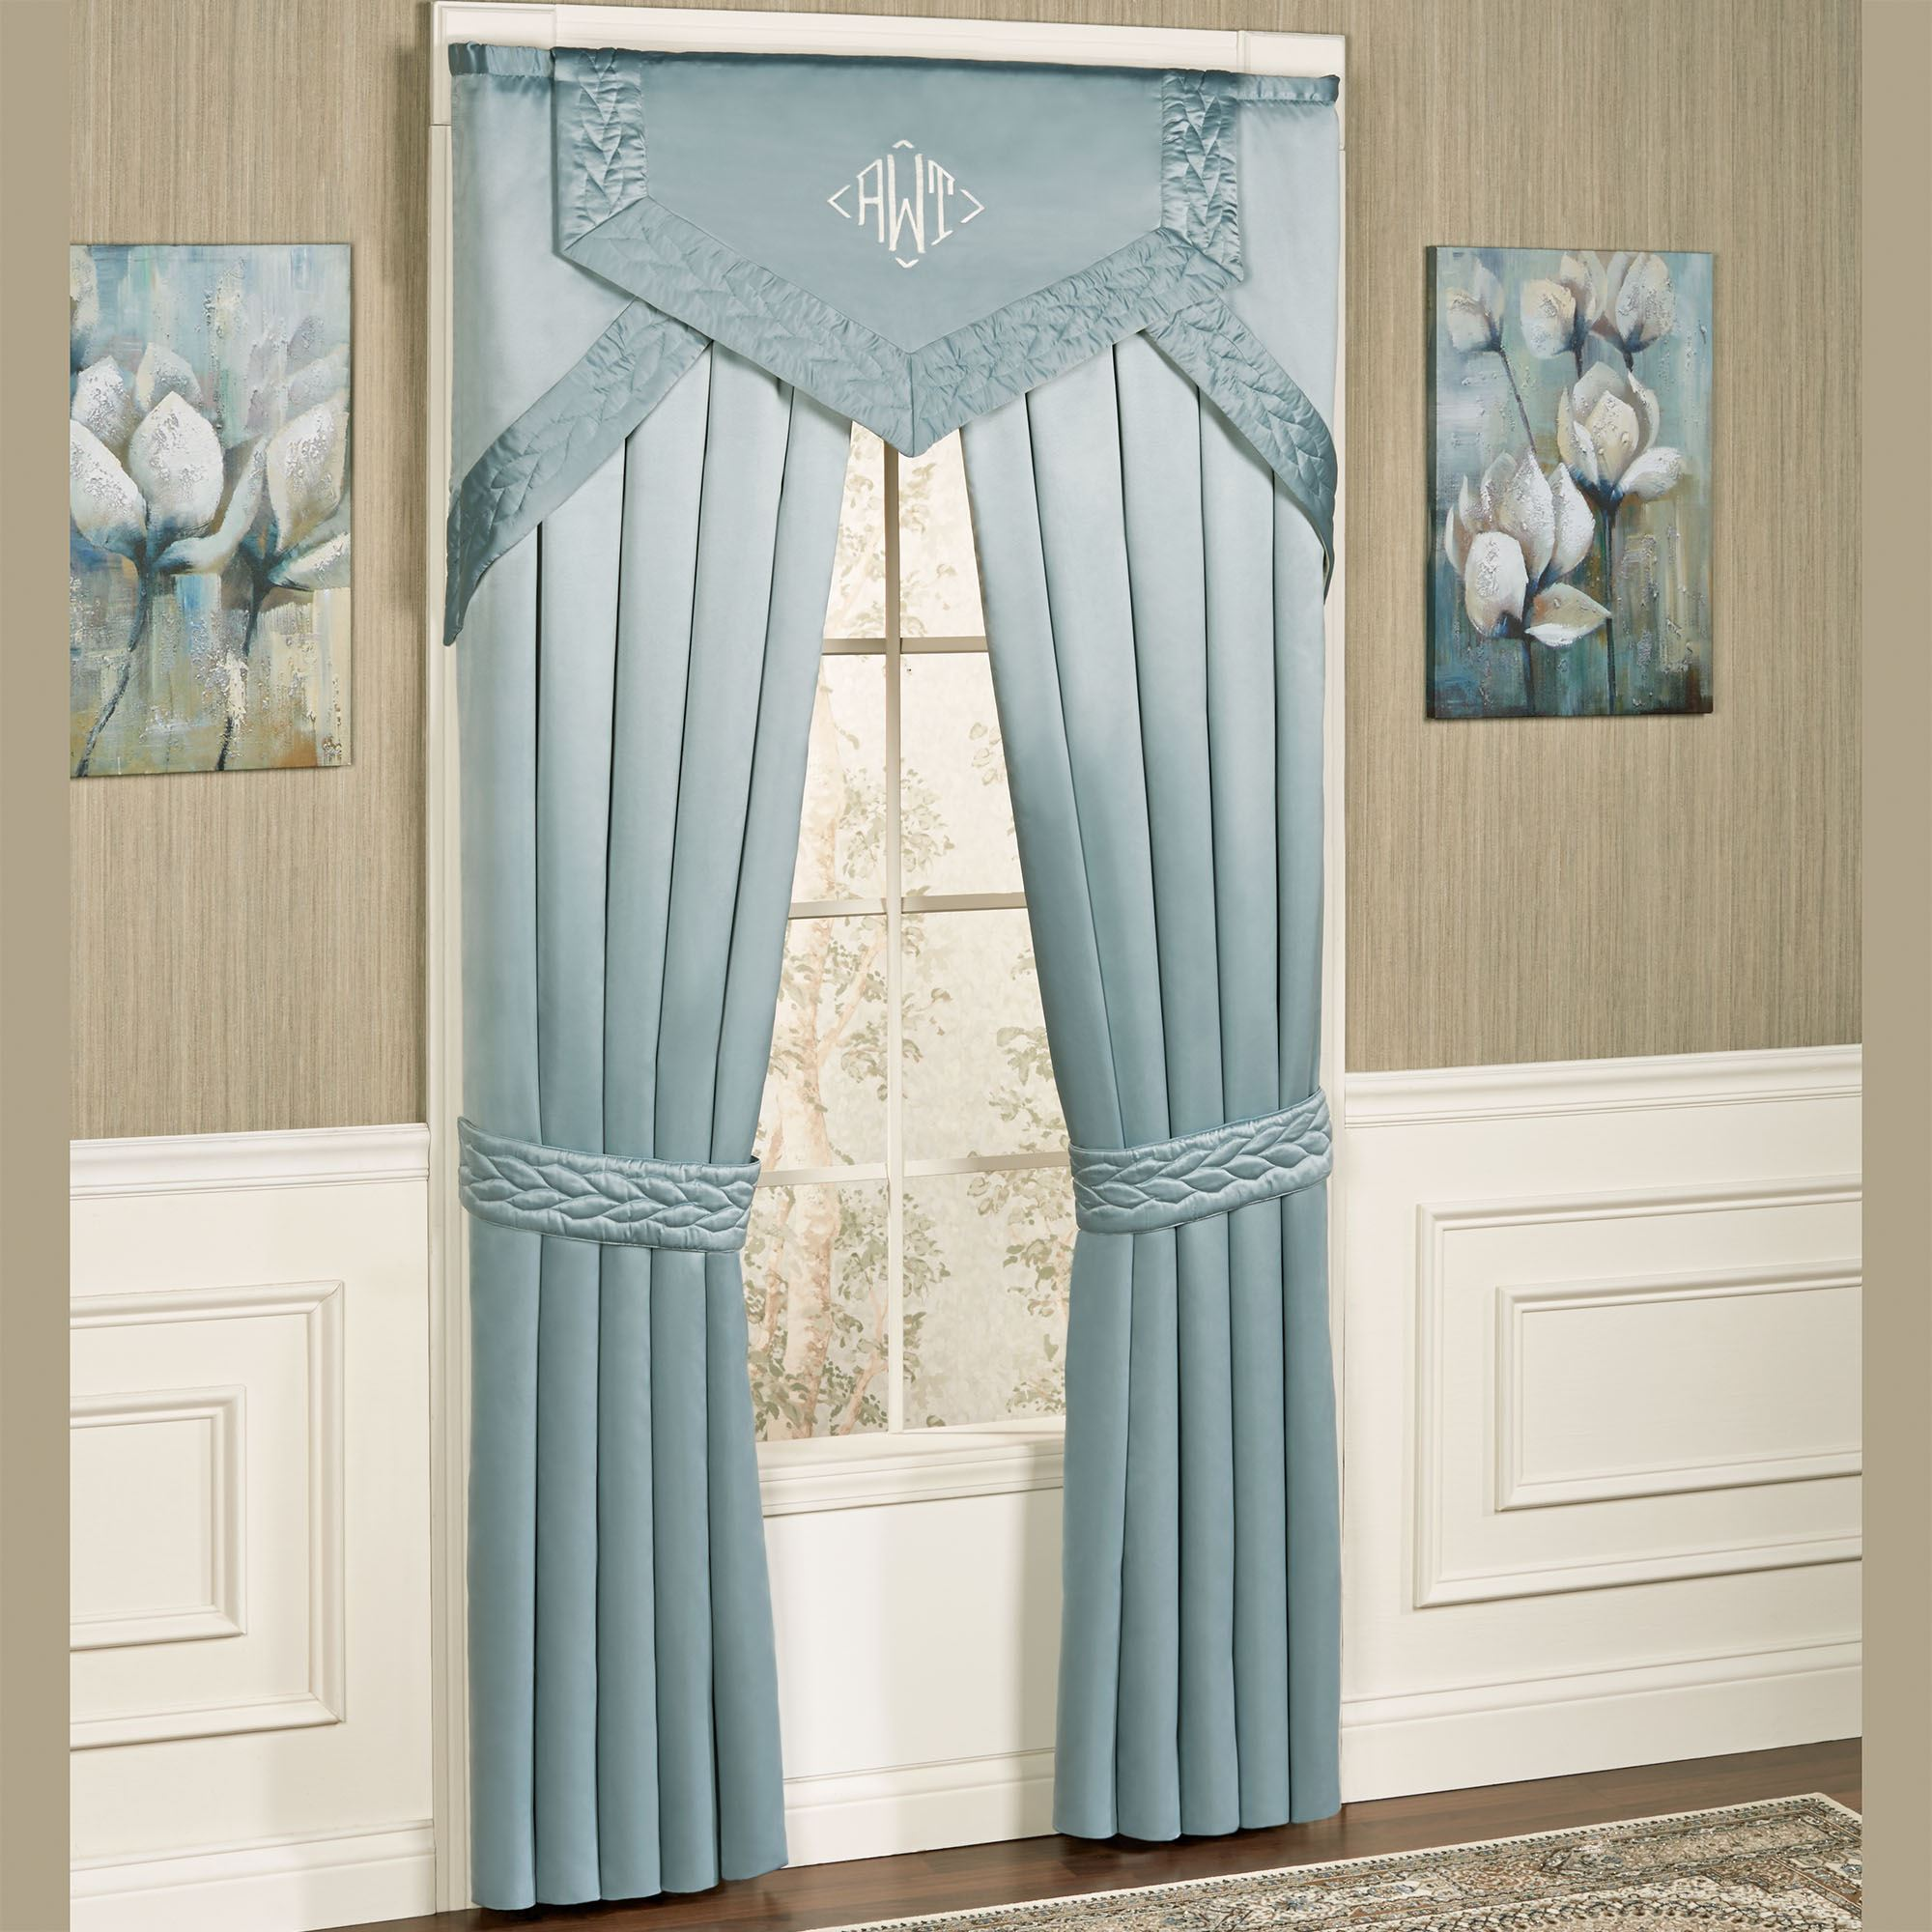 curtain brown p talk coffee piece window valance set opaque elements embroidered curtains and kitchen drapes semi tier